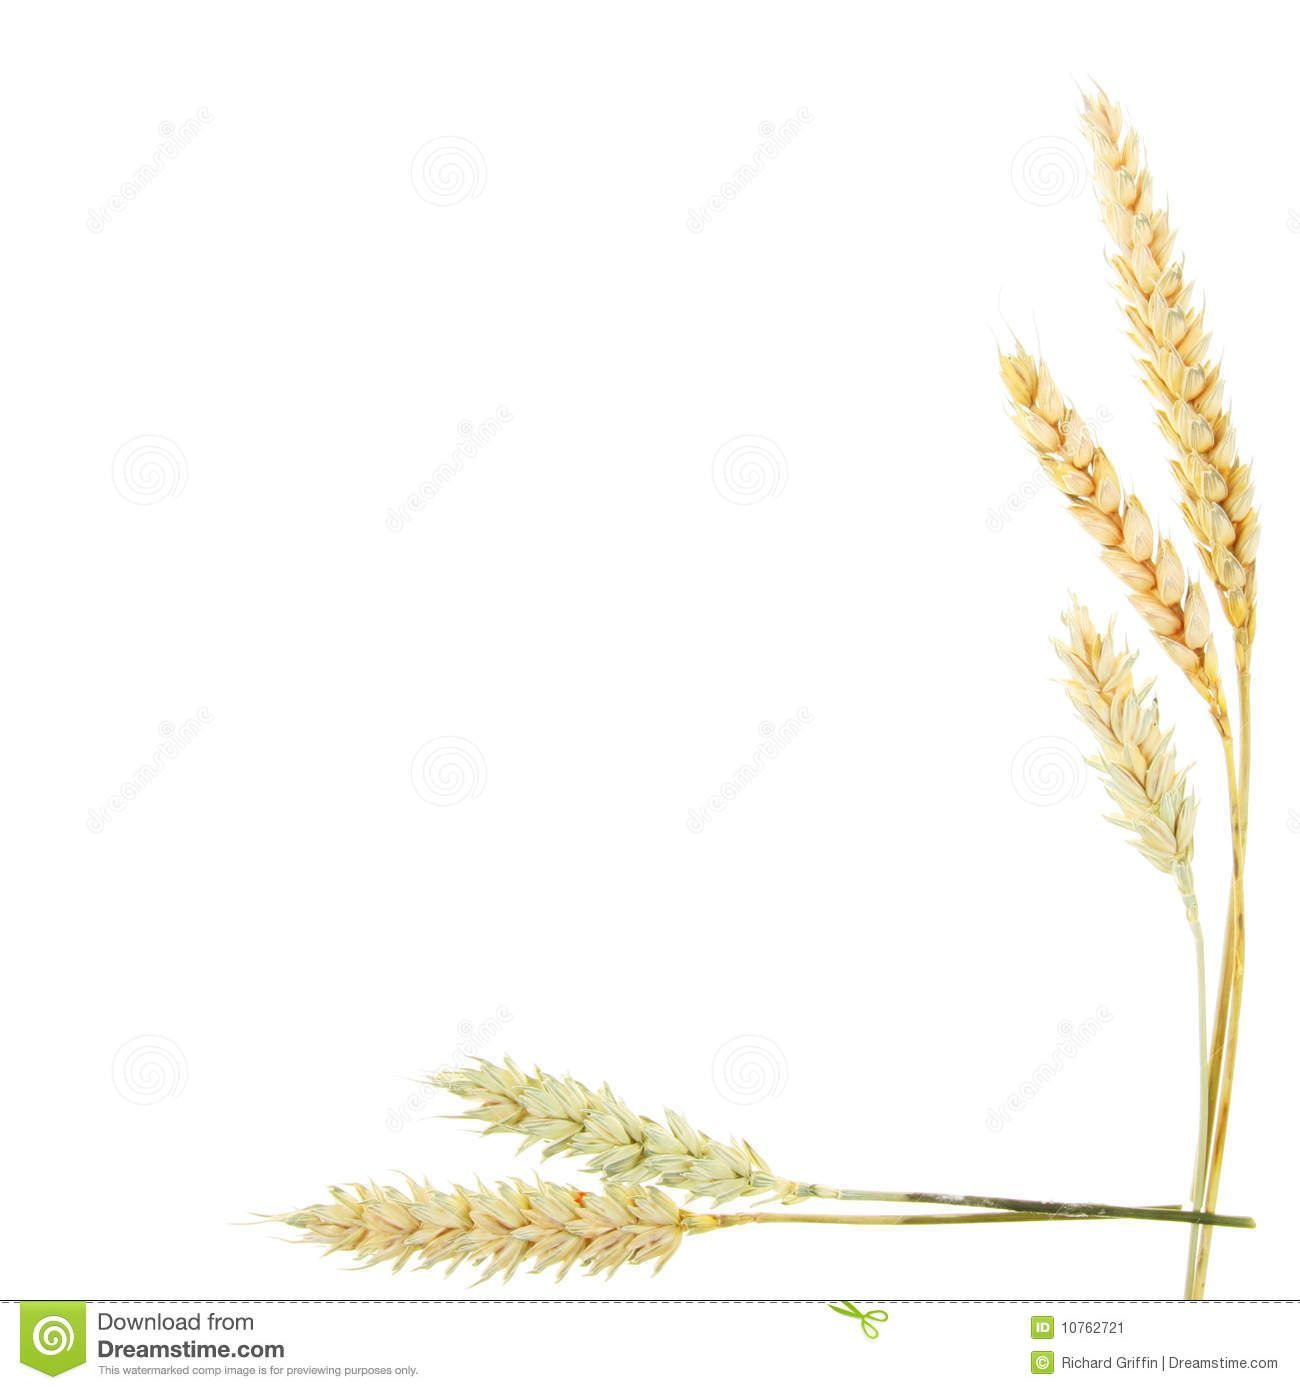 Wheat clipart border vector black and white download Wheat border clipart 4 » Clipart Portal vector black and white download